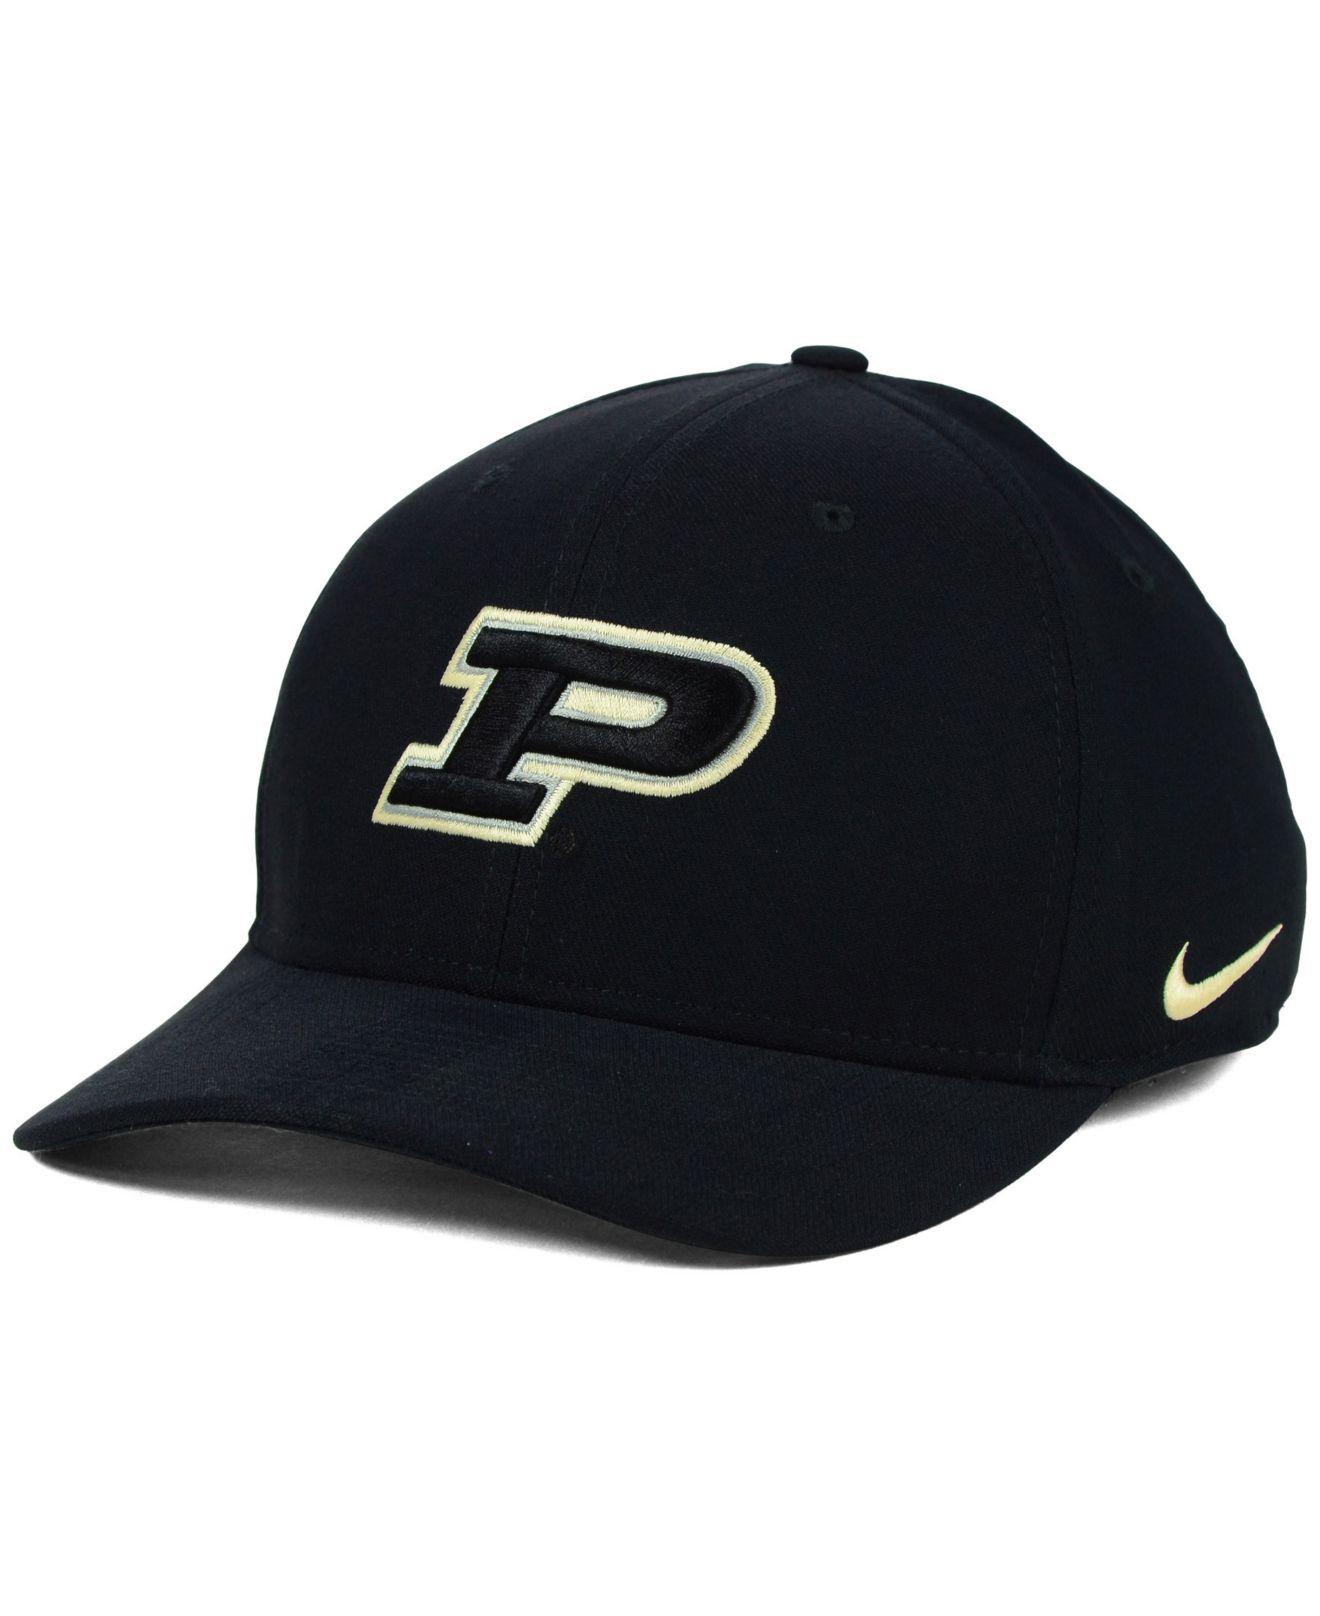 Lyst - Nike Purdue Boilermakers Classic Swoosh Cap in Black for Men e88d39726610